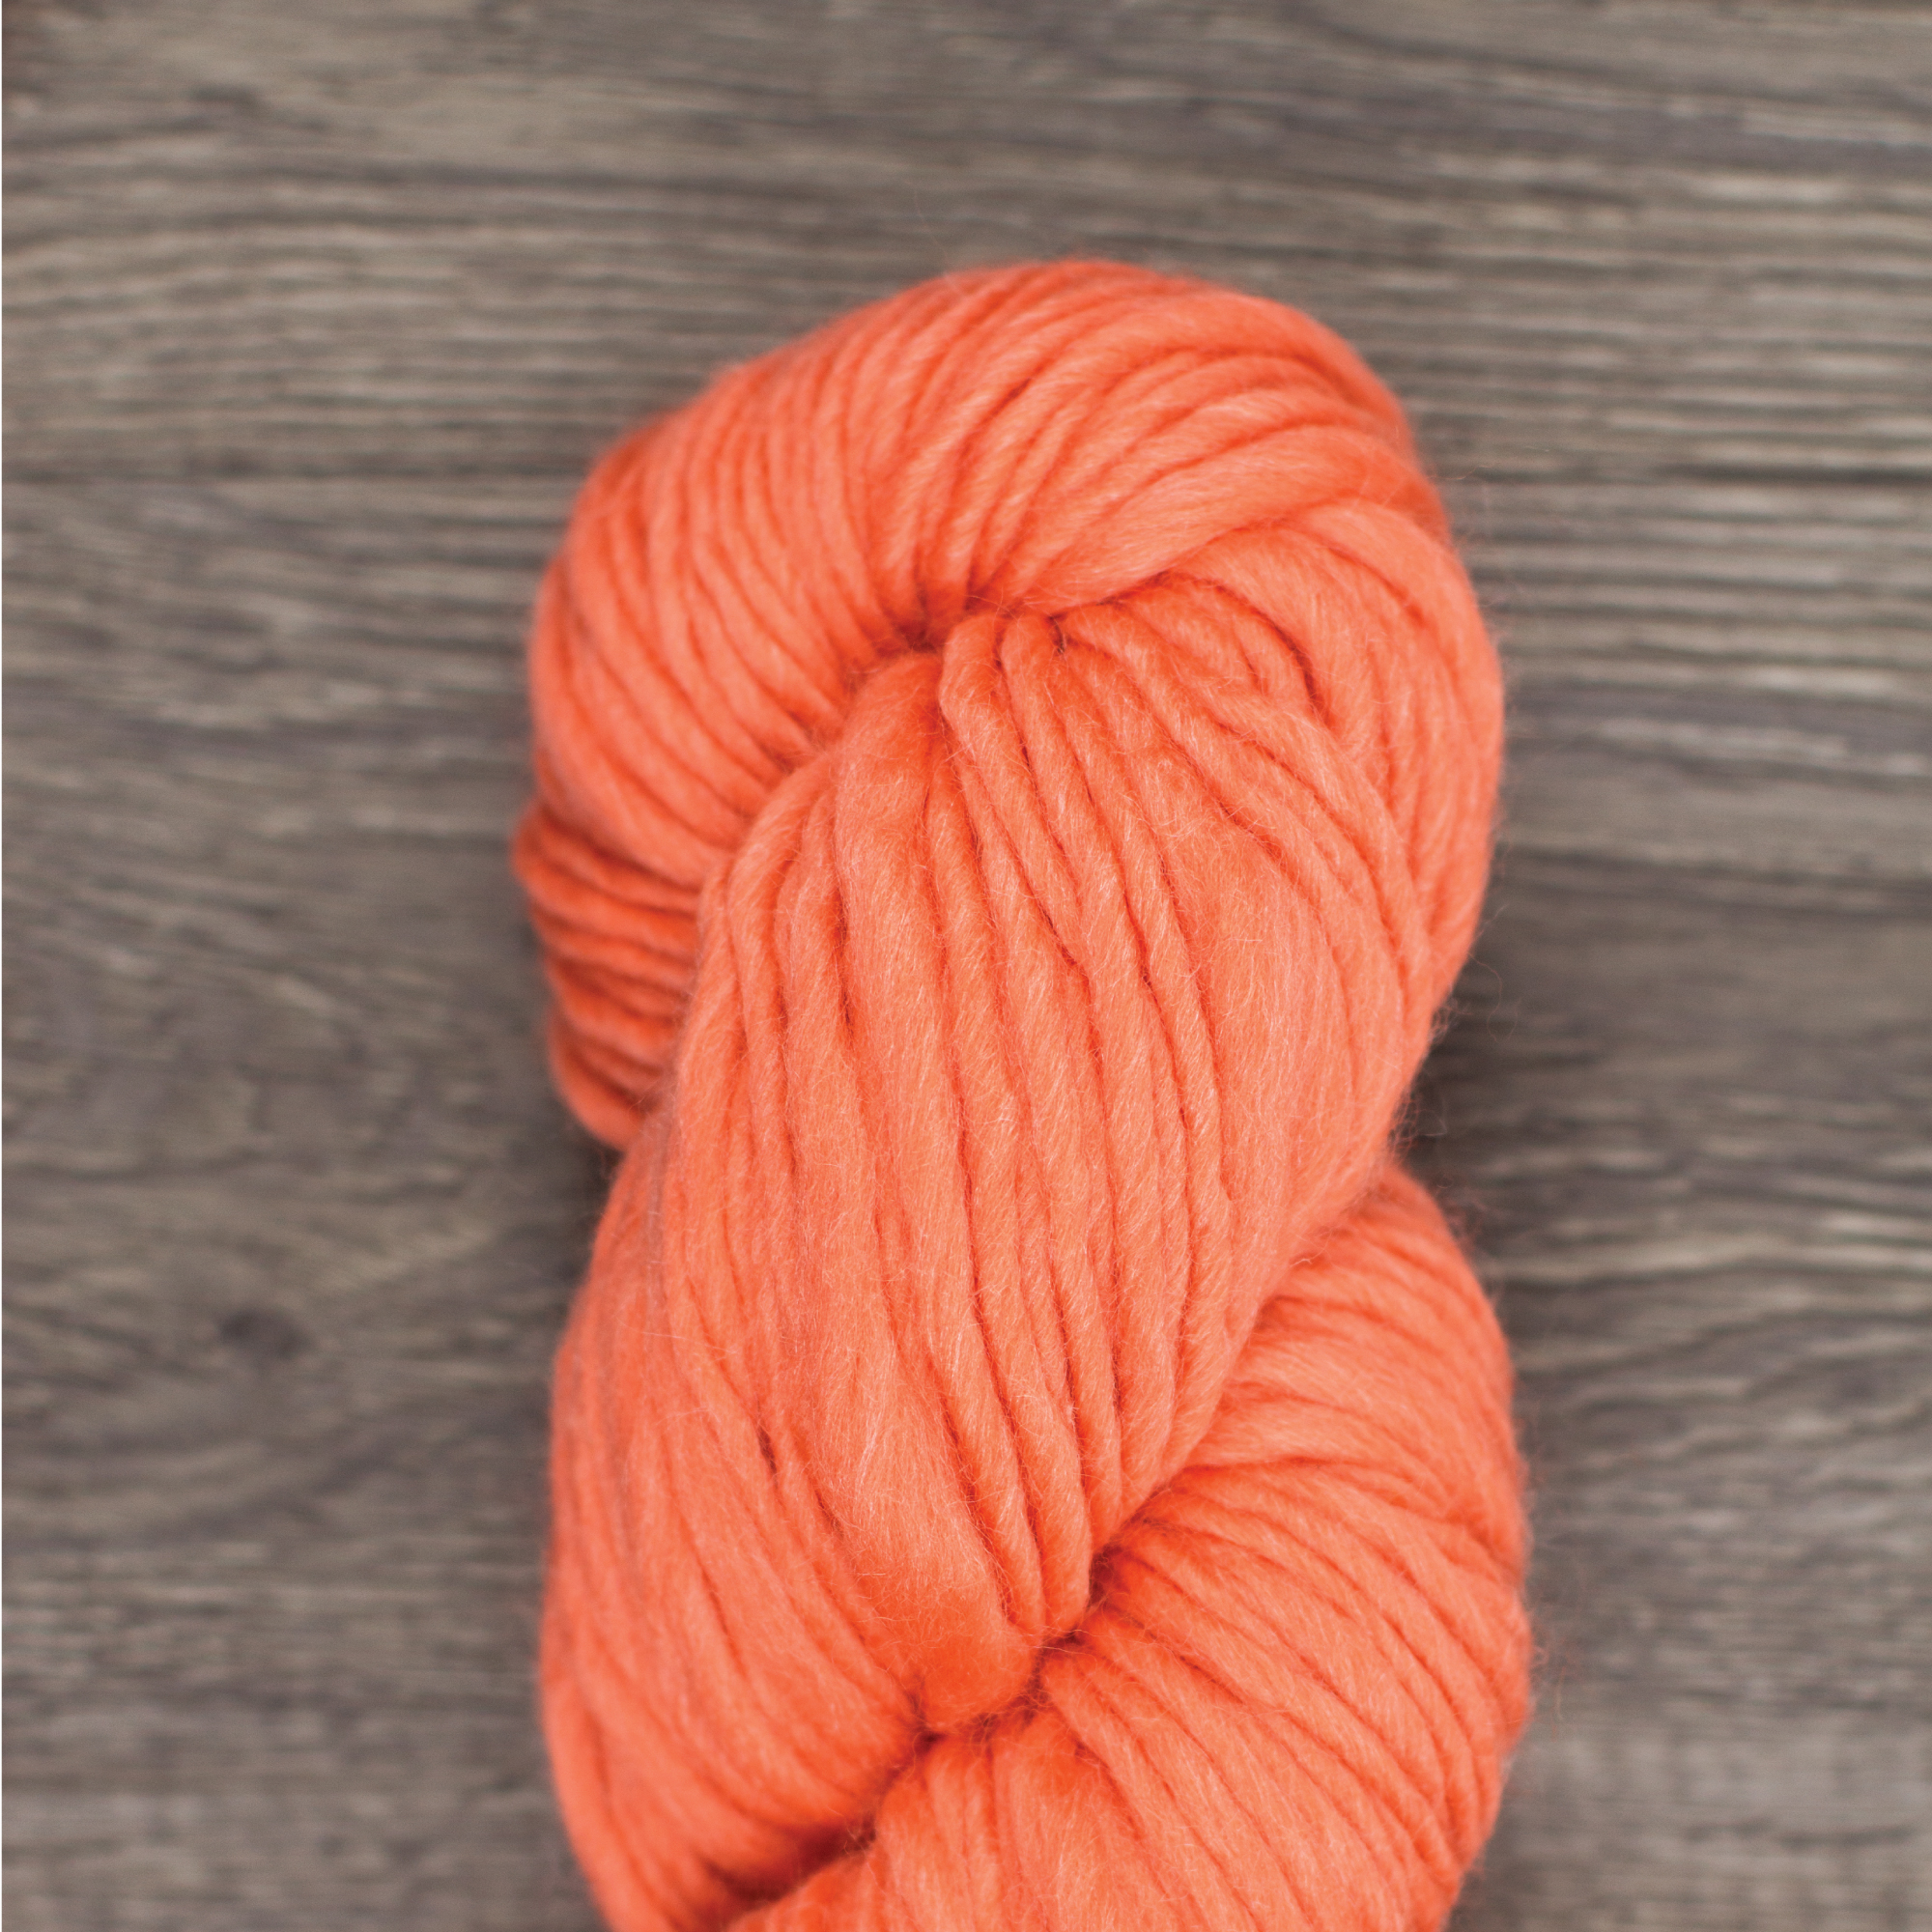 VIVACE by Cloud9 Fibers — 900220 | SUNSET GLOW